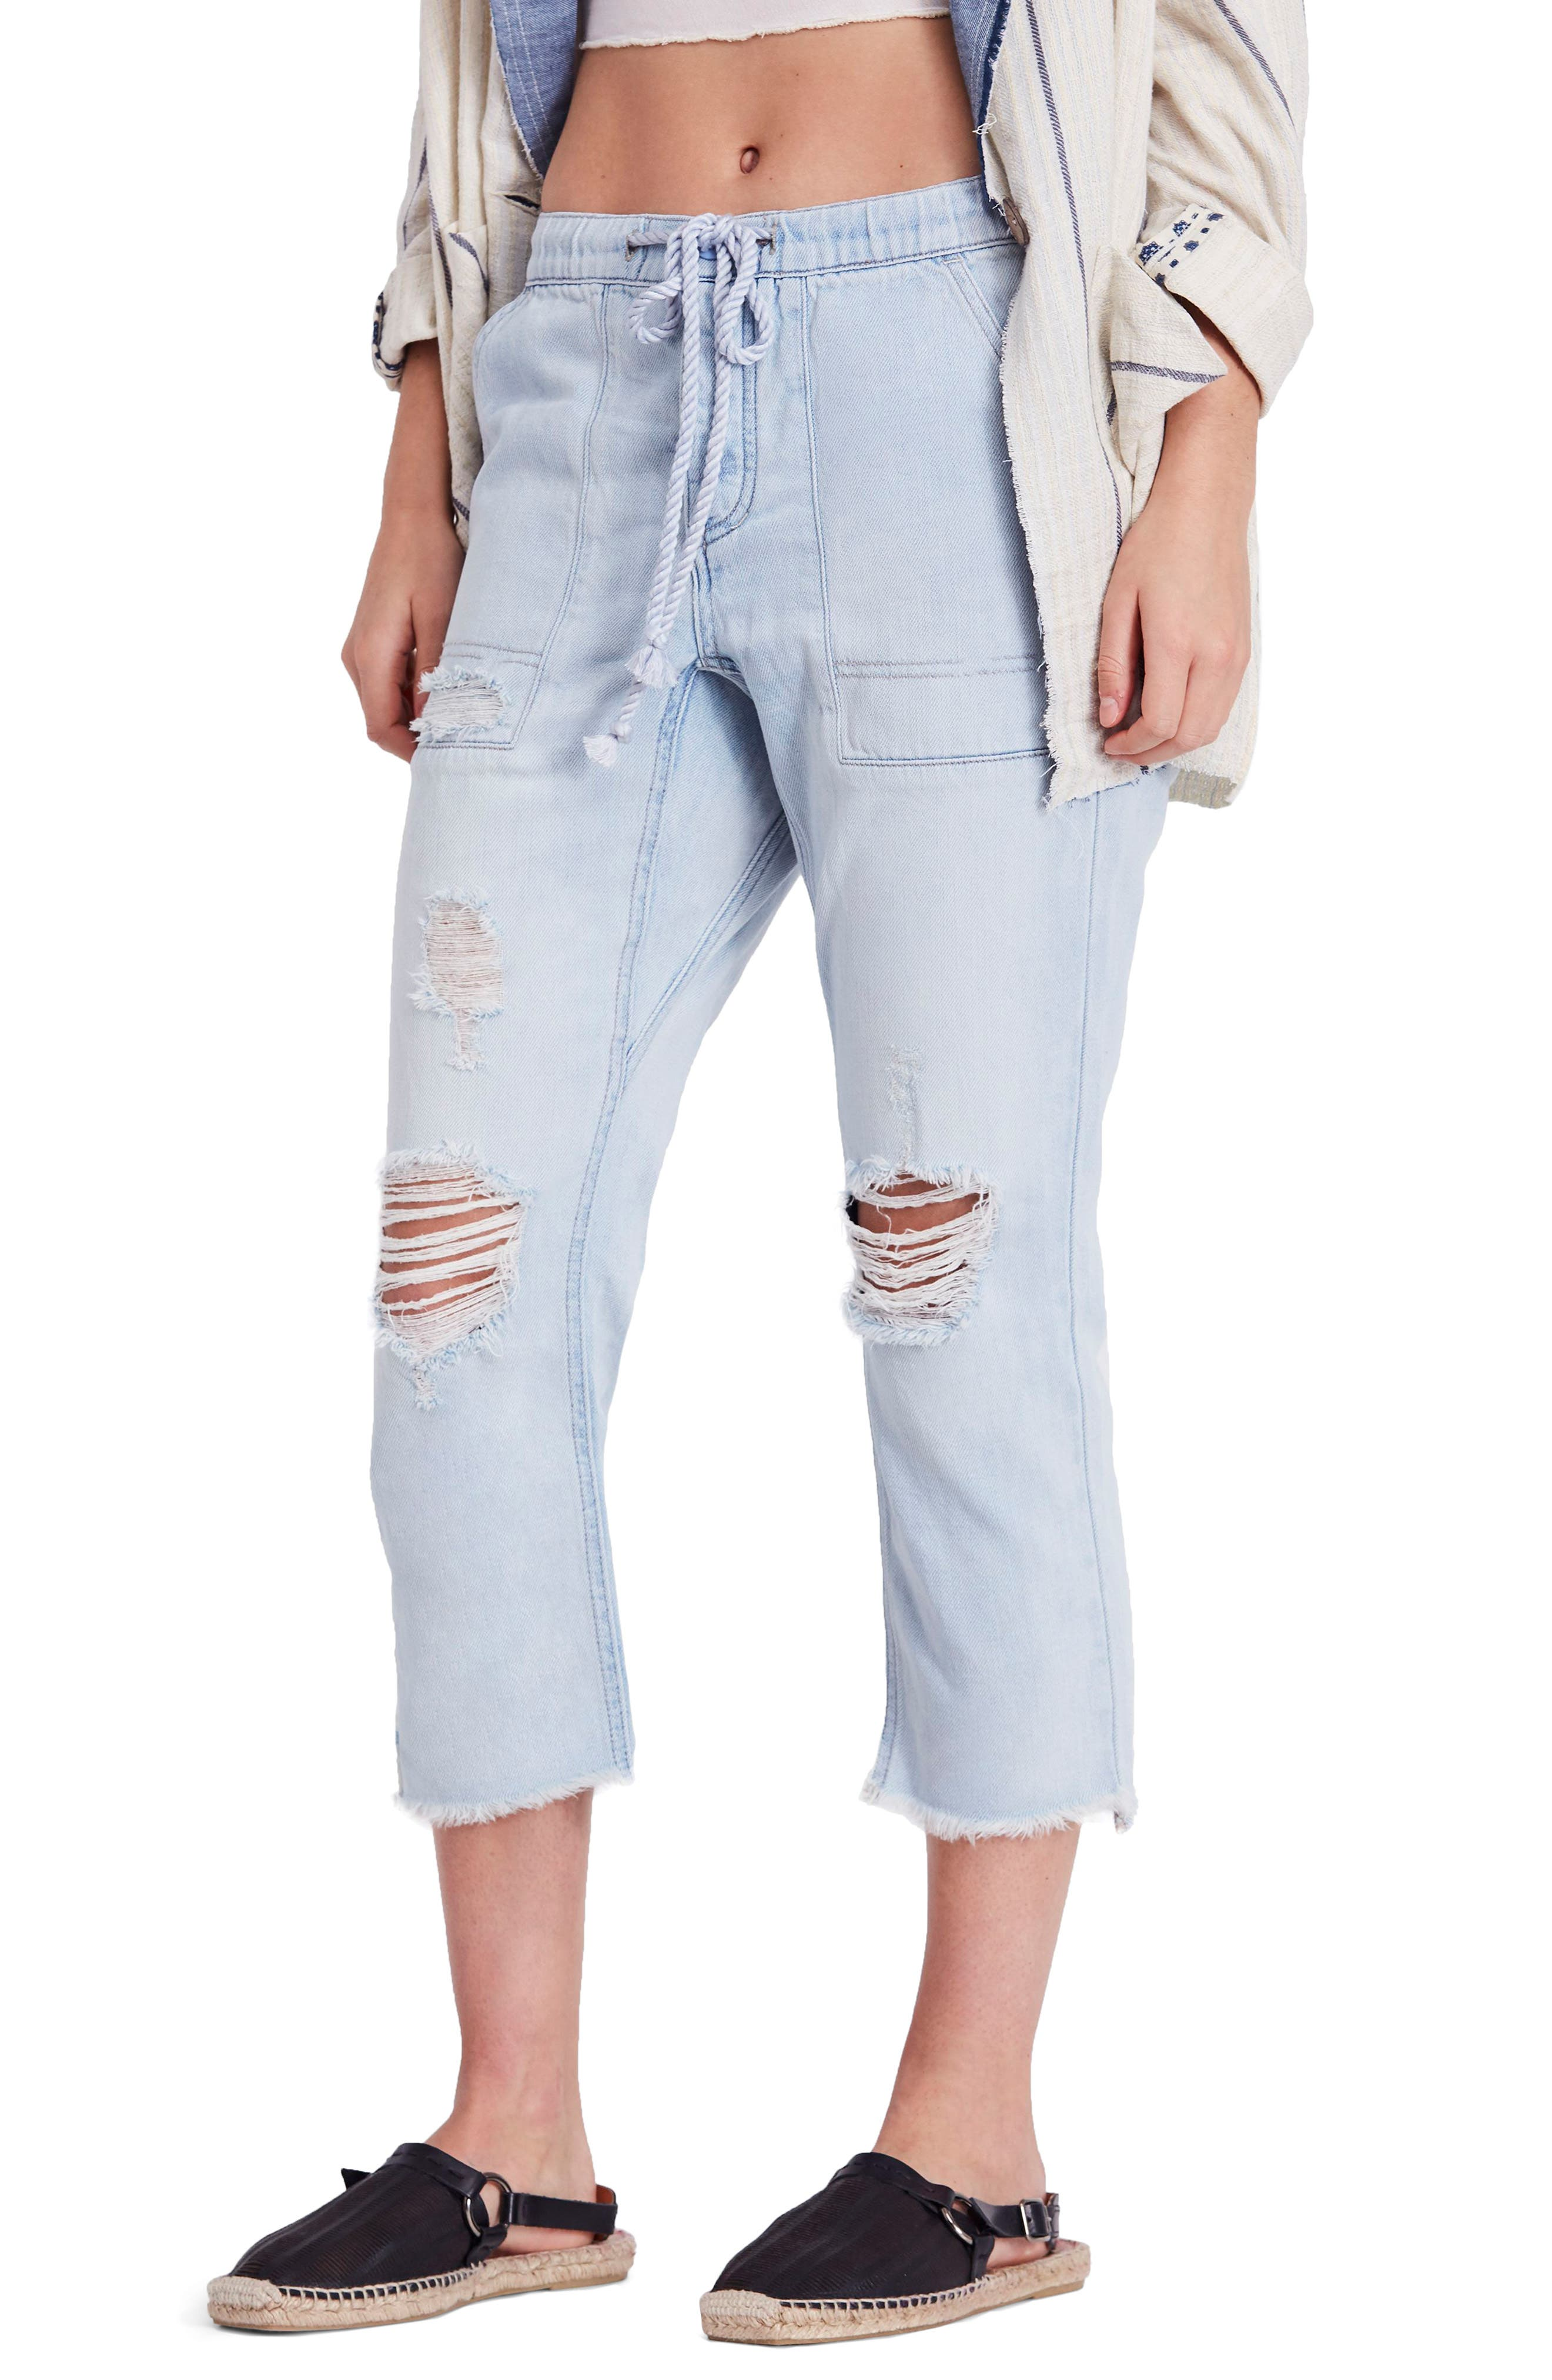 Northern Sky Ripped Crop Jeans,                             Main thumbnail 1, color,                             Blue